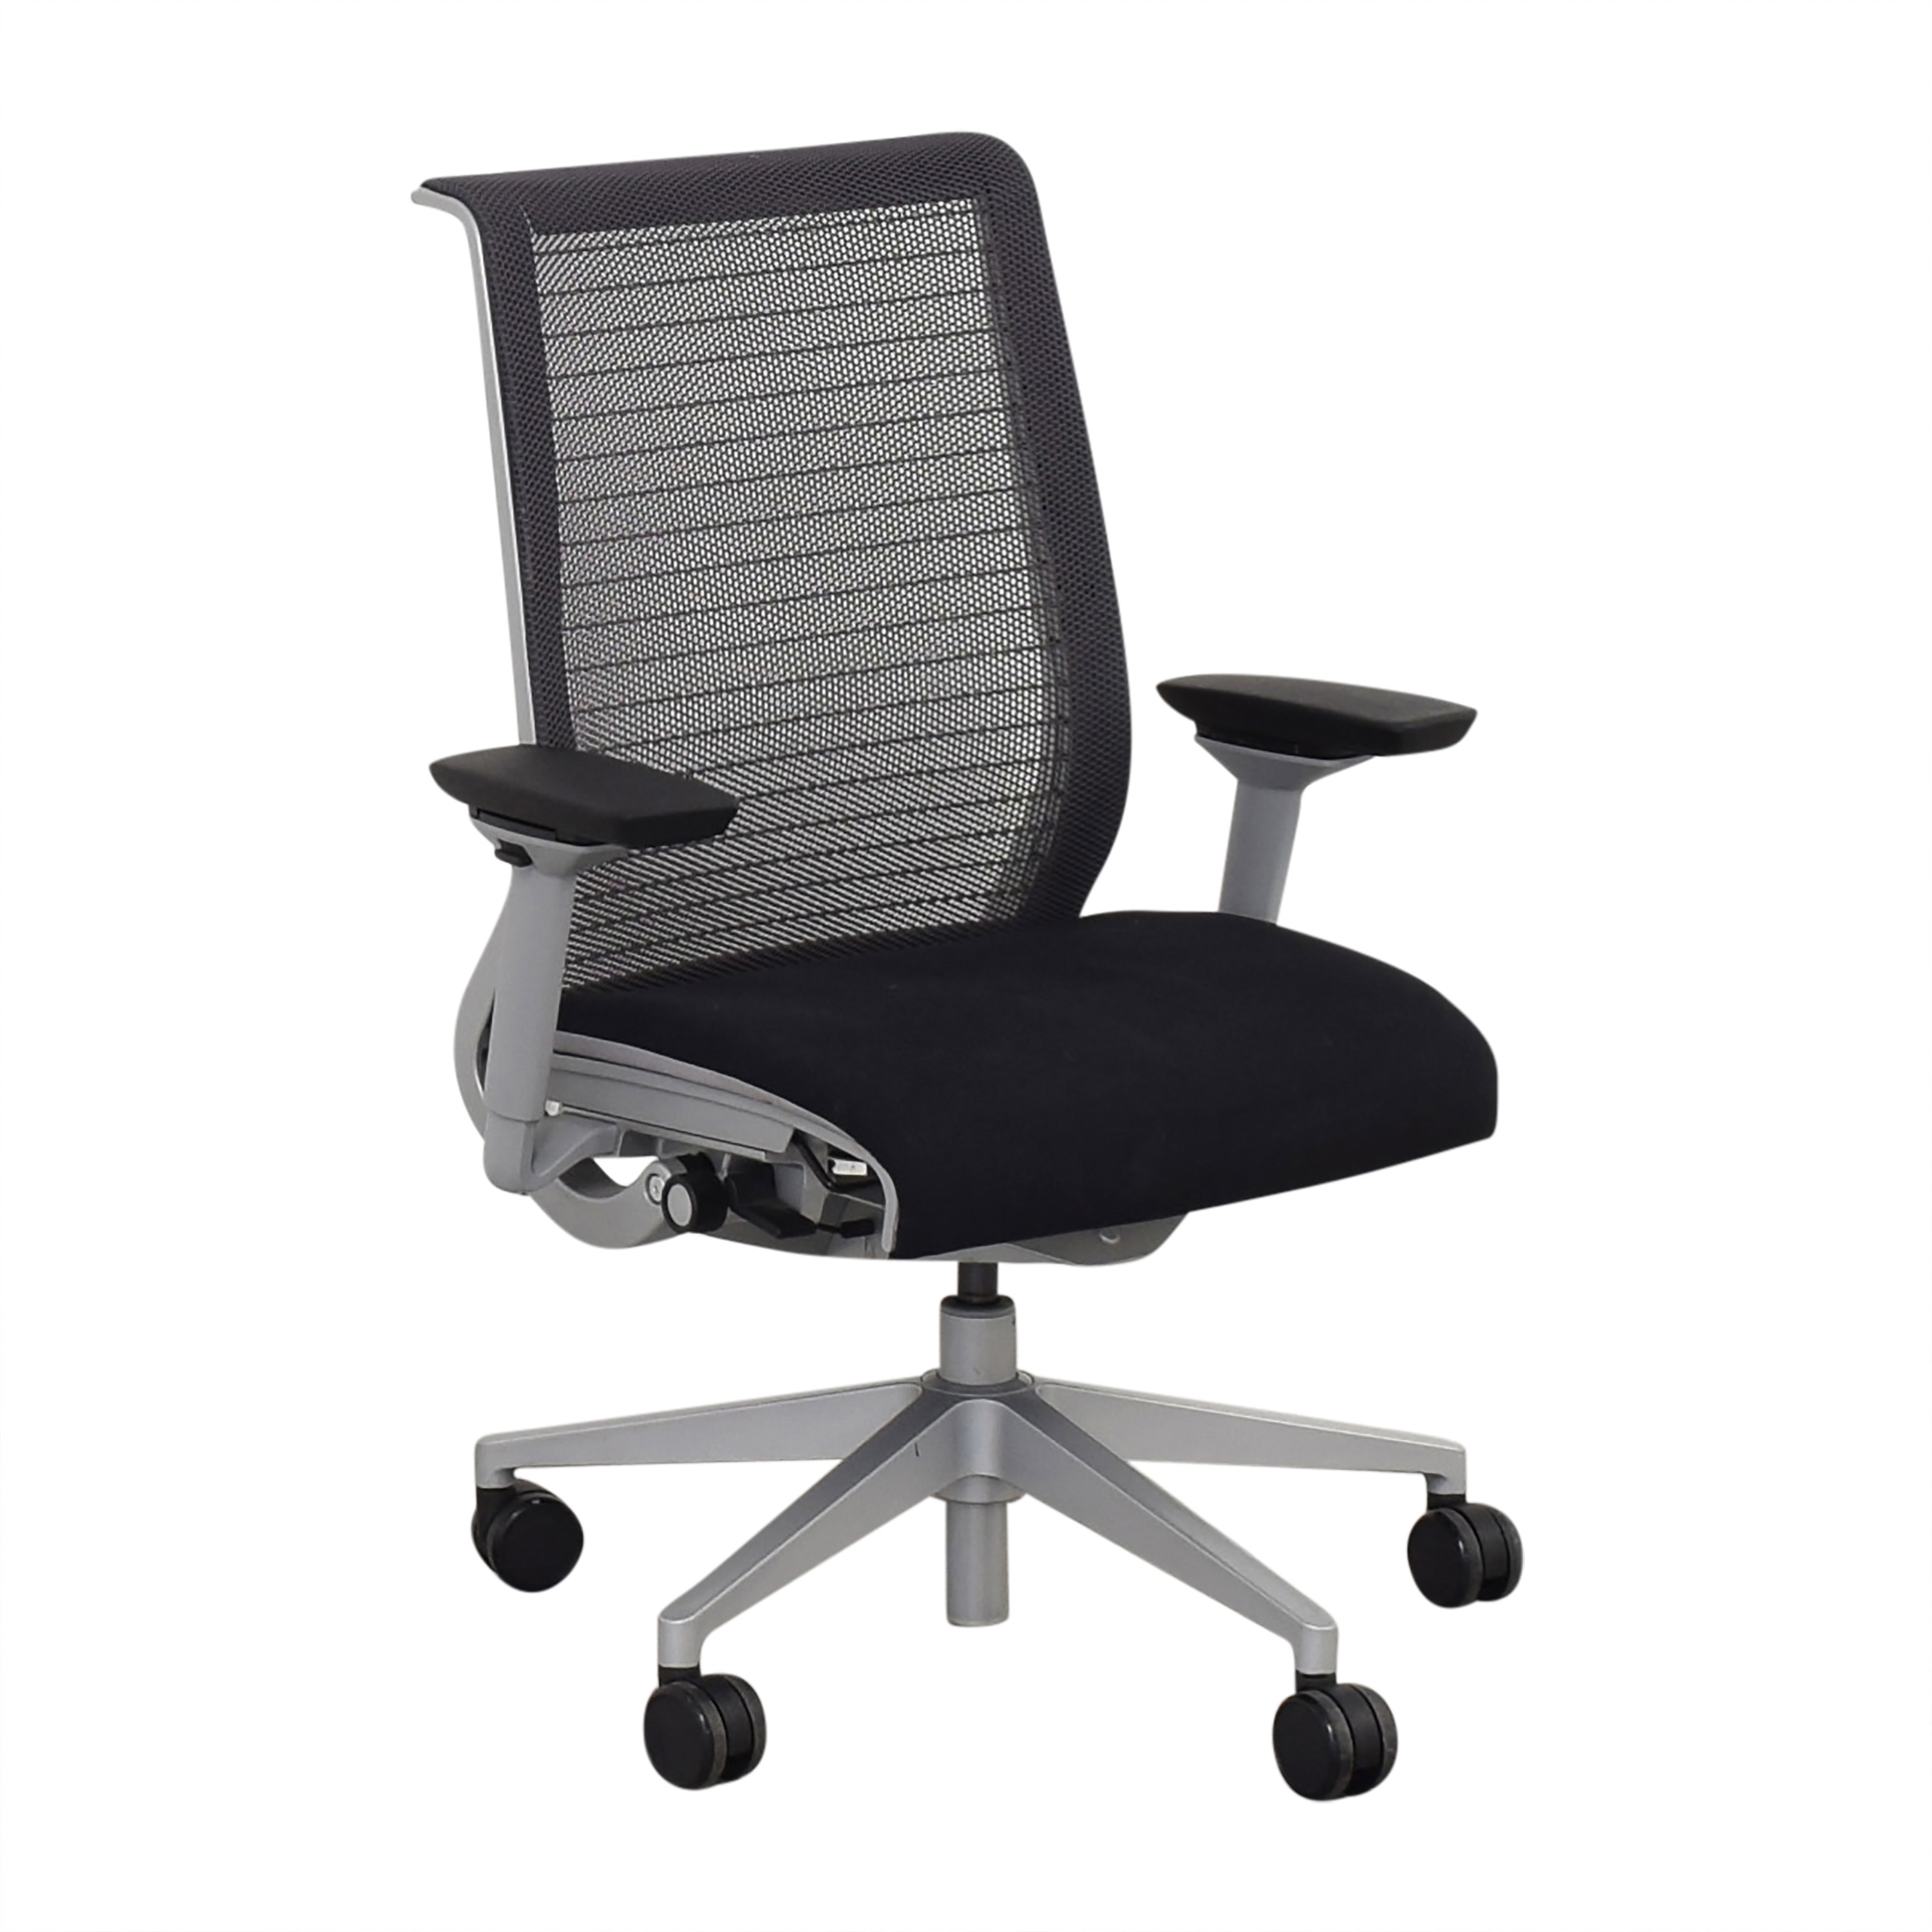 Steelcase Steelcase Cobi Swivel Chair used